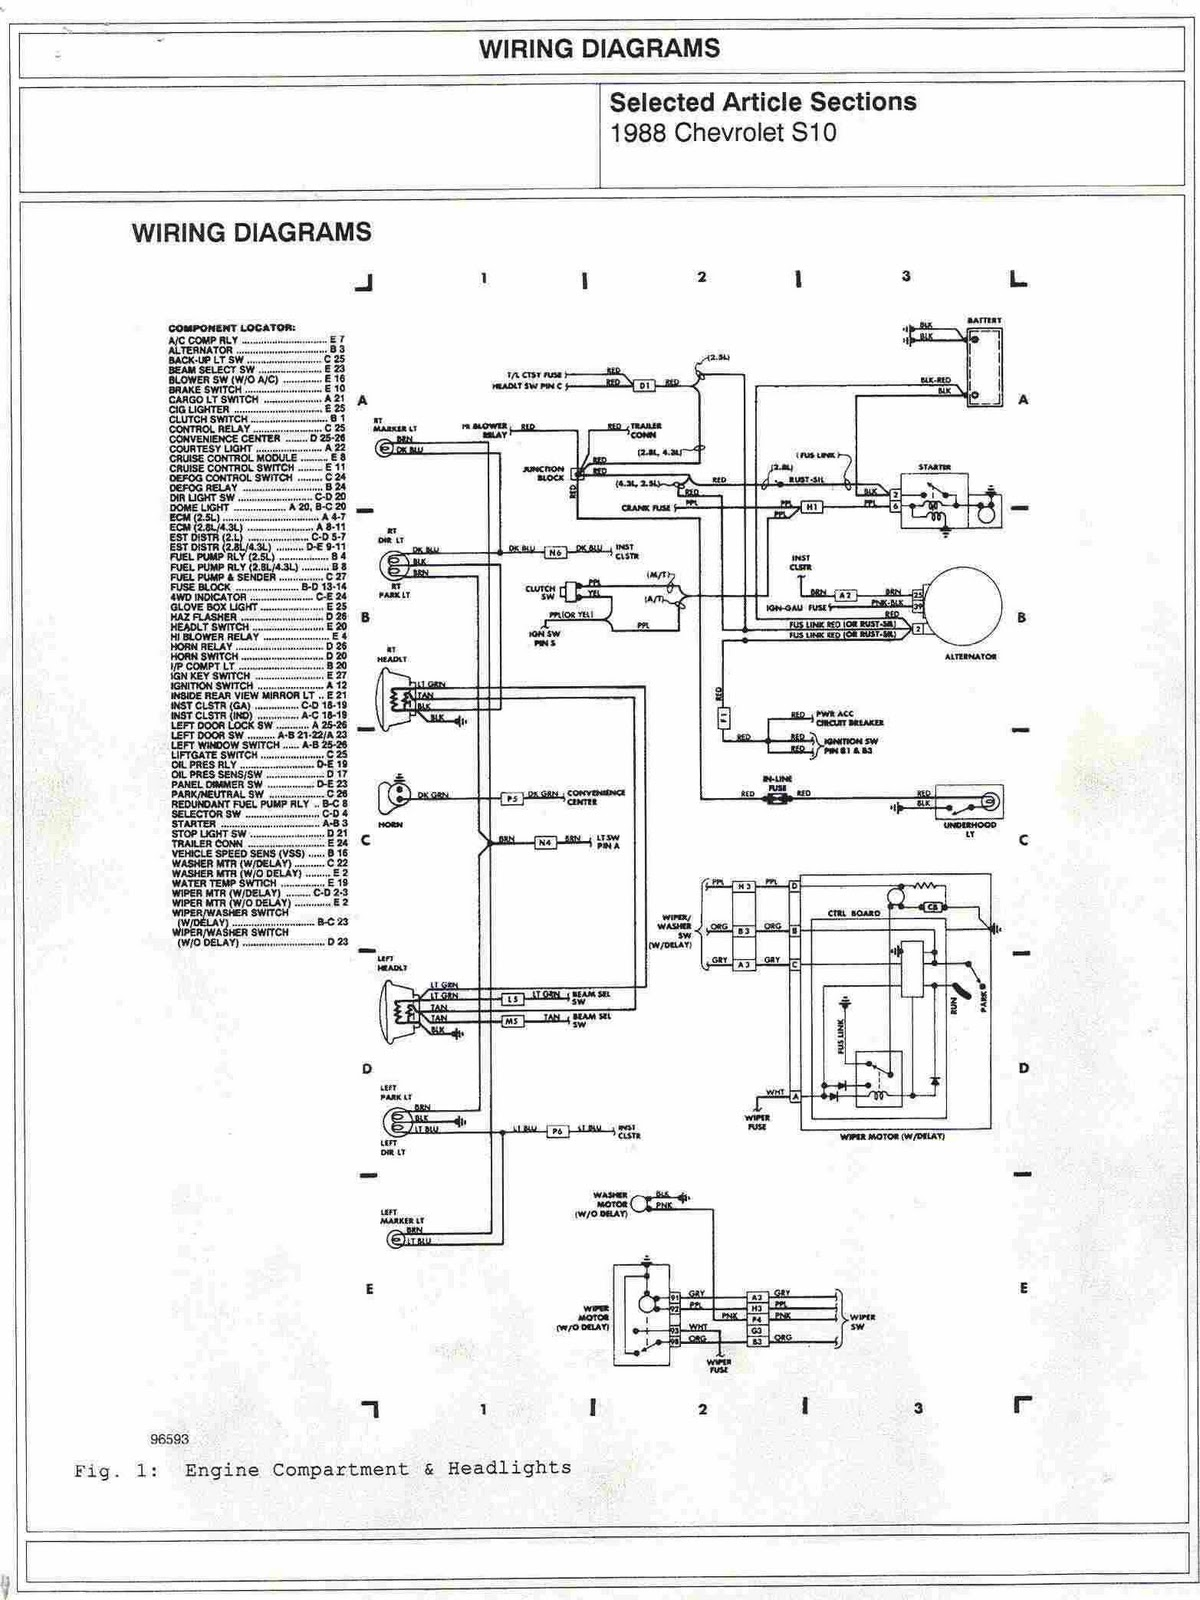 88 chevy s10 radio wiring diagram simple wiring schema 1988 s10 ignition wiring diagram 1988 s10 wiring diagram [ 1200 x 1600 Pixel ]